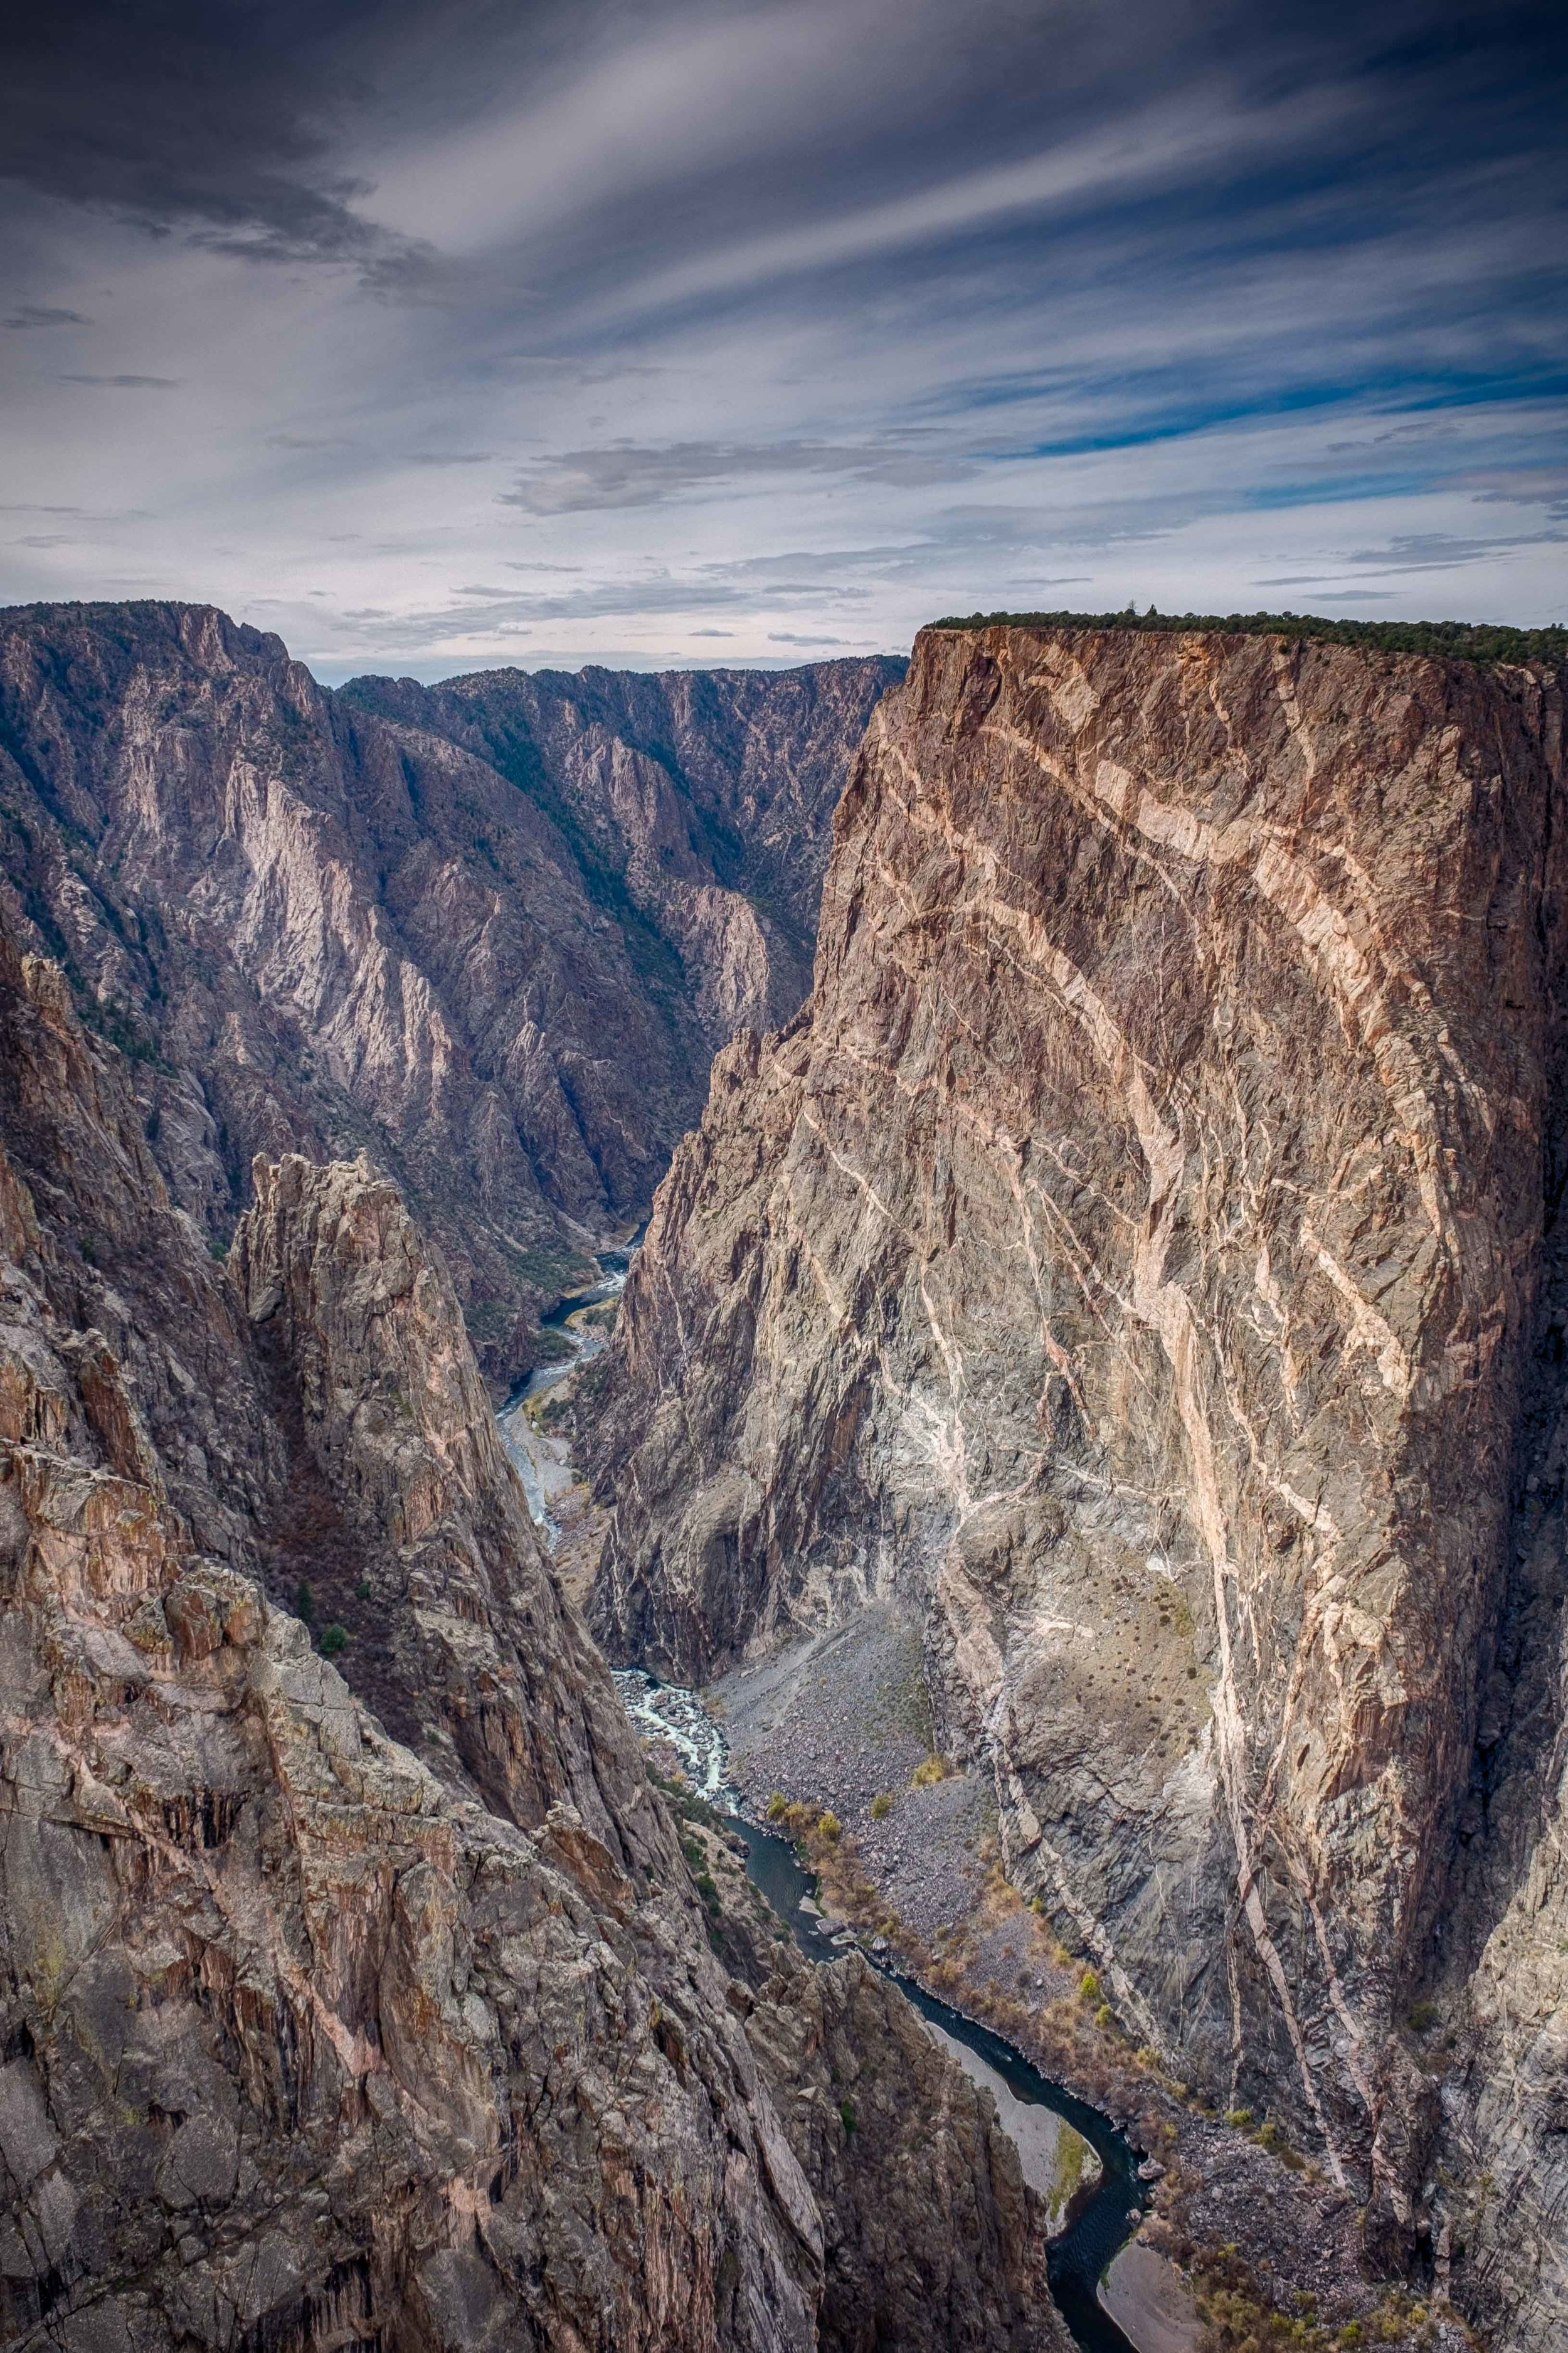 The Painted Canyon is the most photographed canyon scene in the national park.